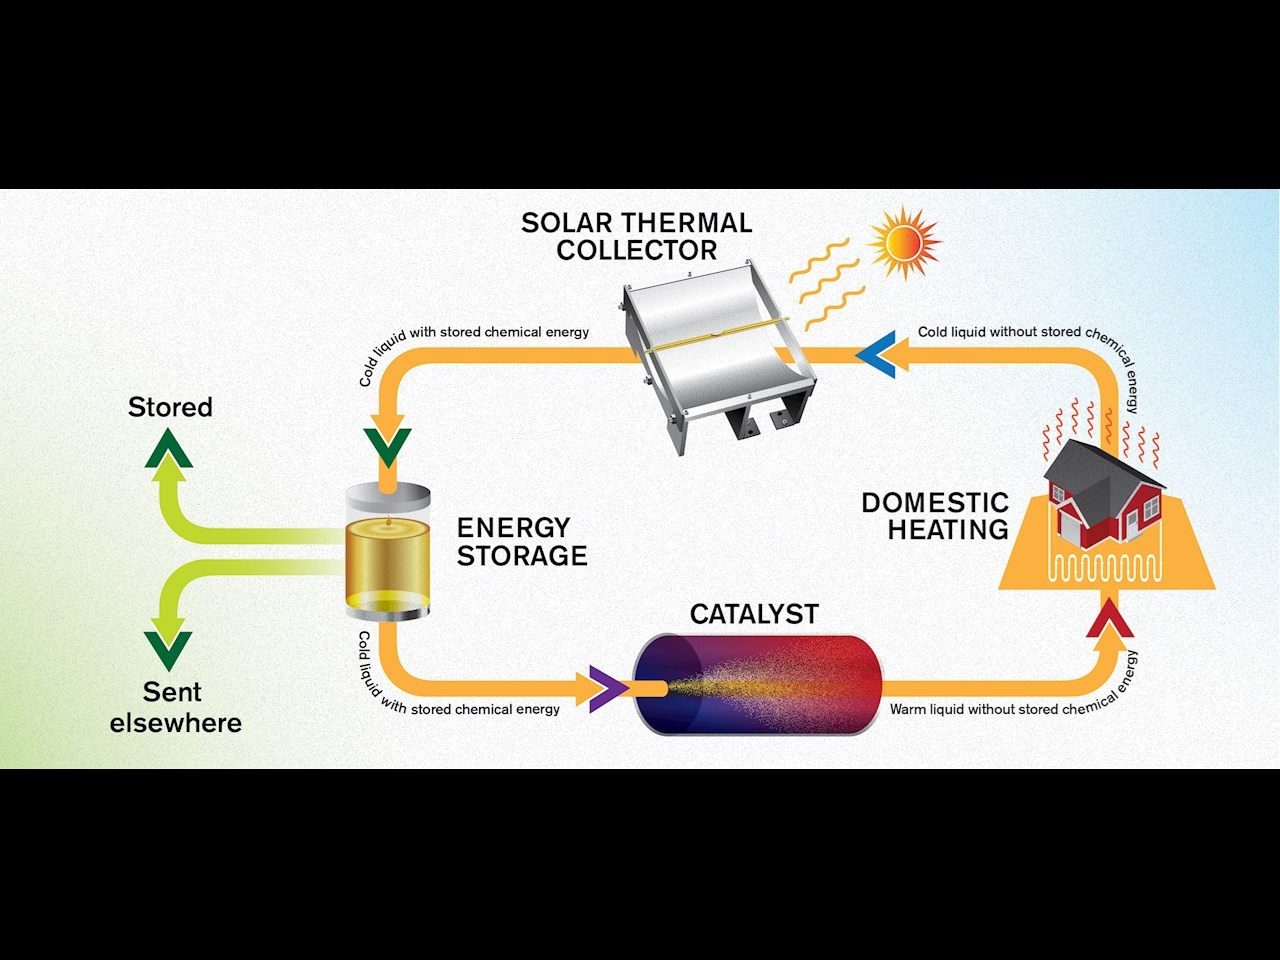 Illustration of a solar thermal collector